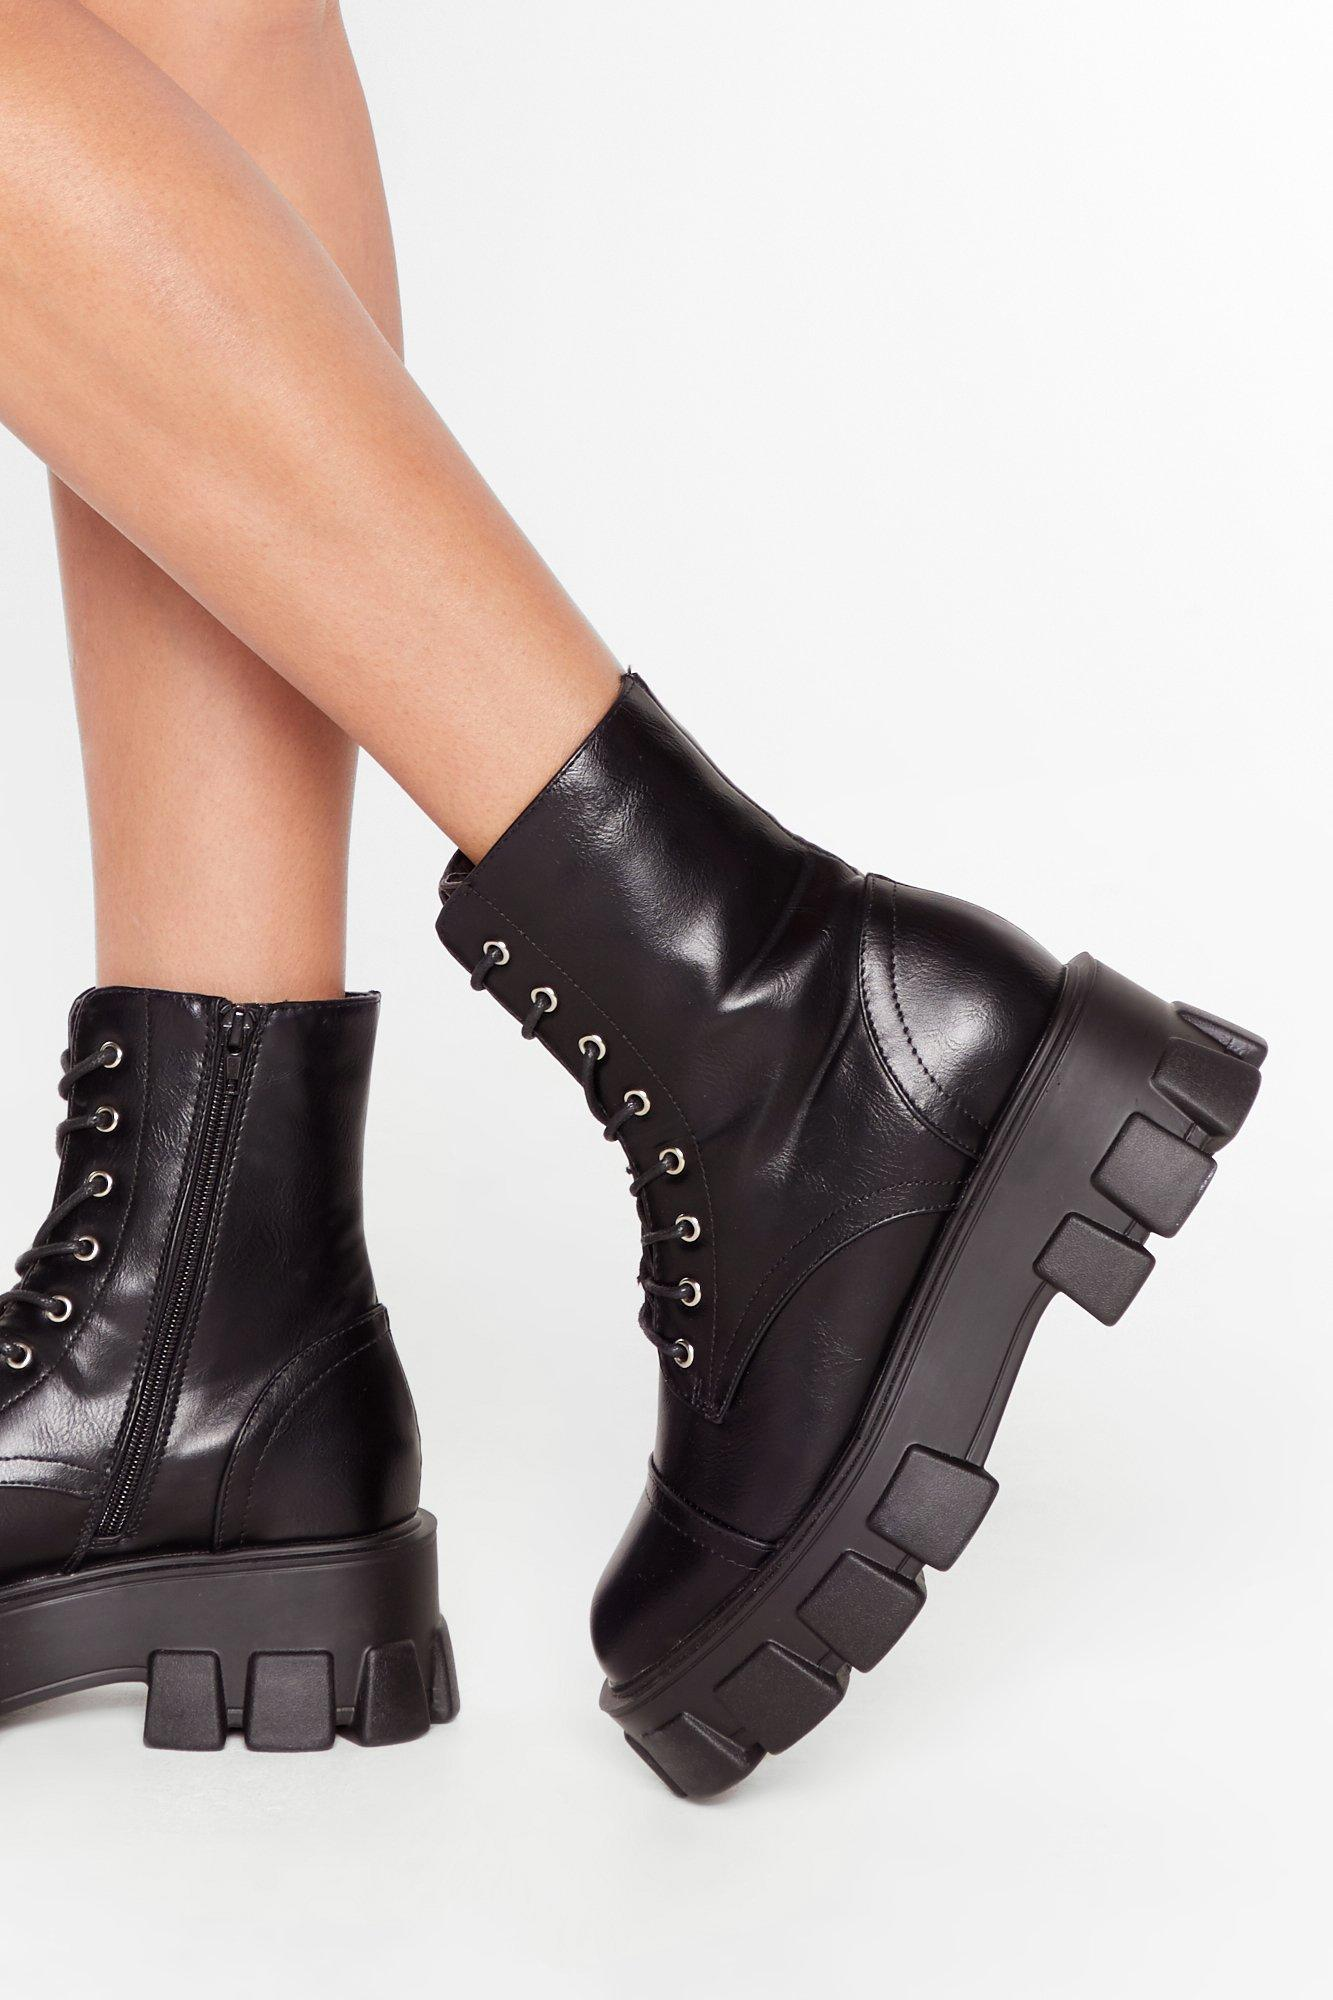 Image of Admit De-cleat Faux Leather Lace-Up Boots